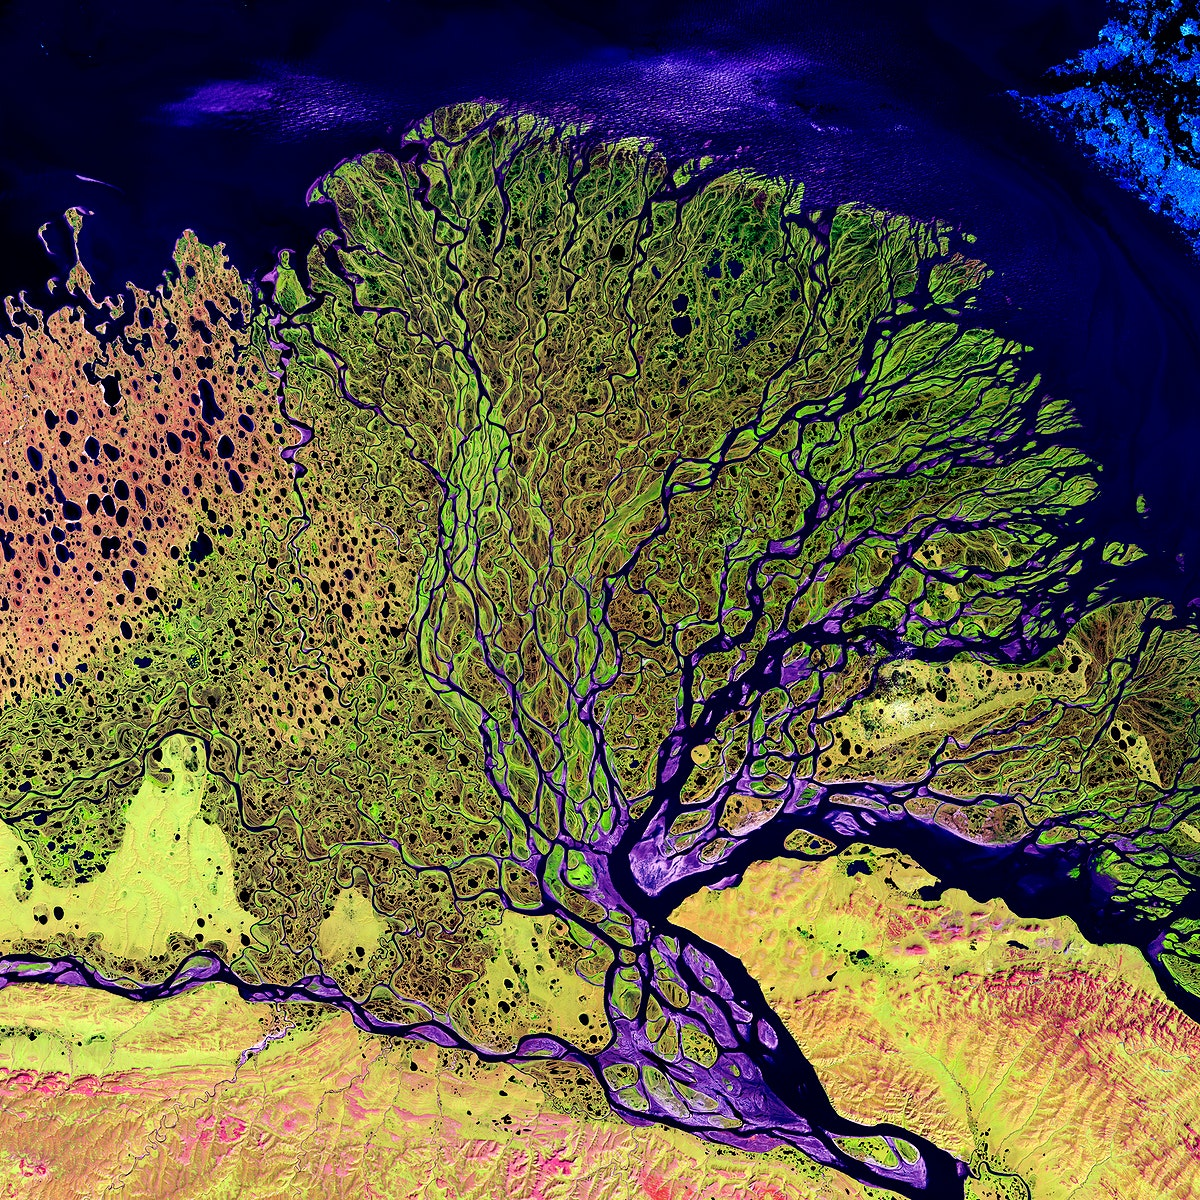 The Lena River, some 2,800 miles long, is one of the largest rivers in the world. Original from NASA. Digitally enhanced by…